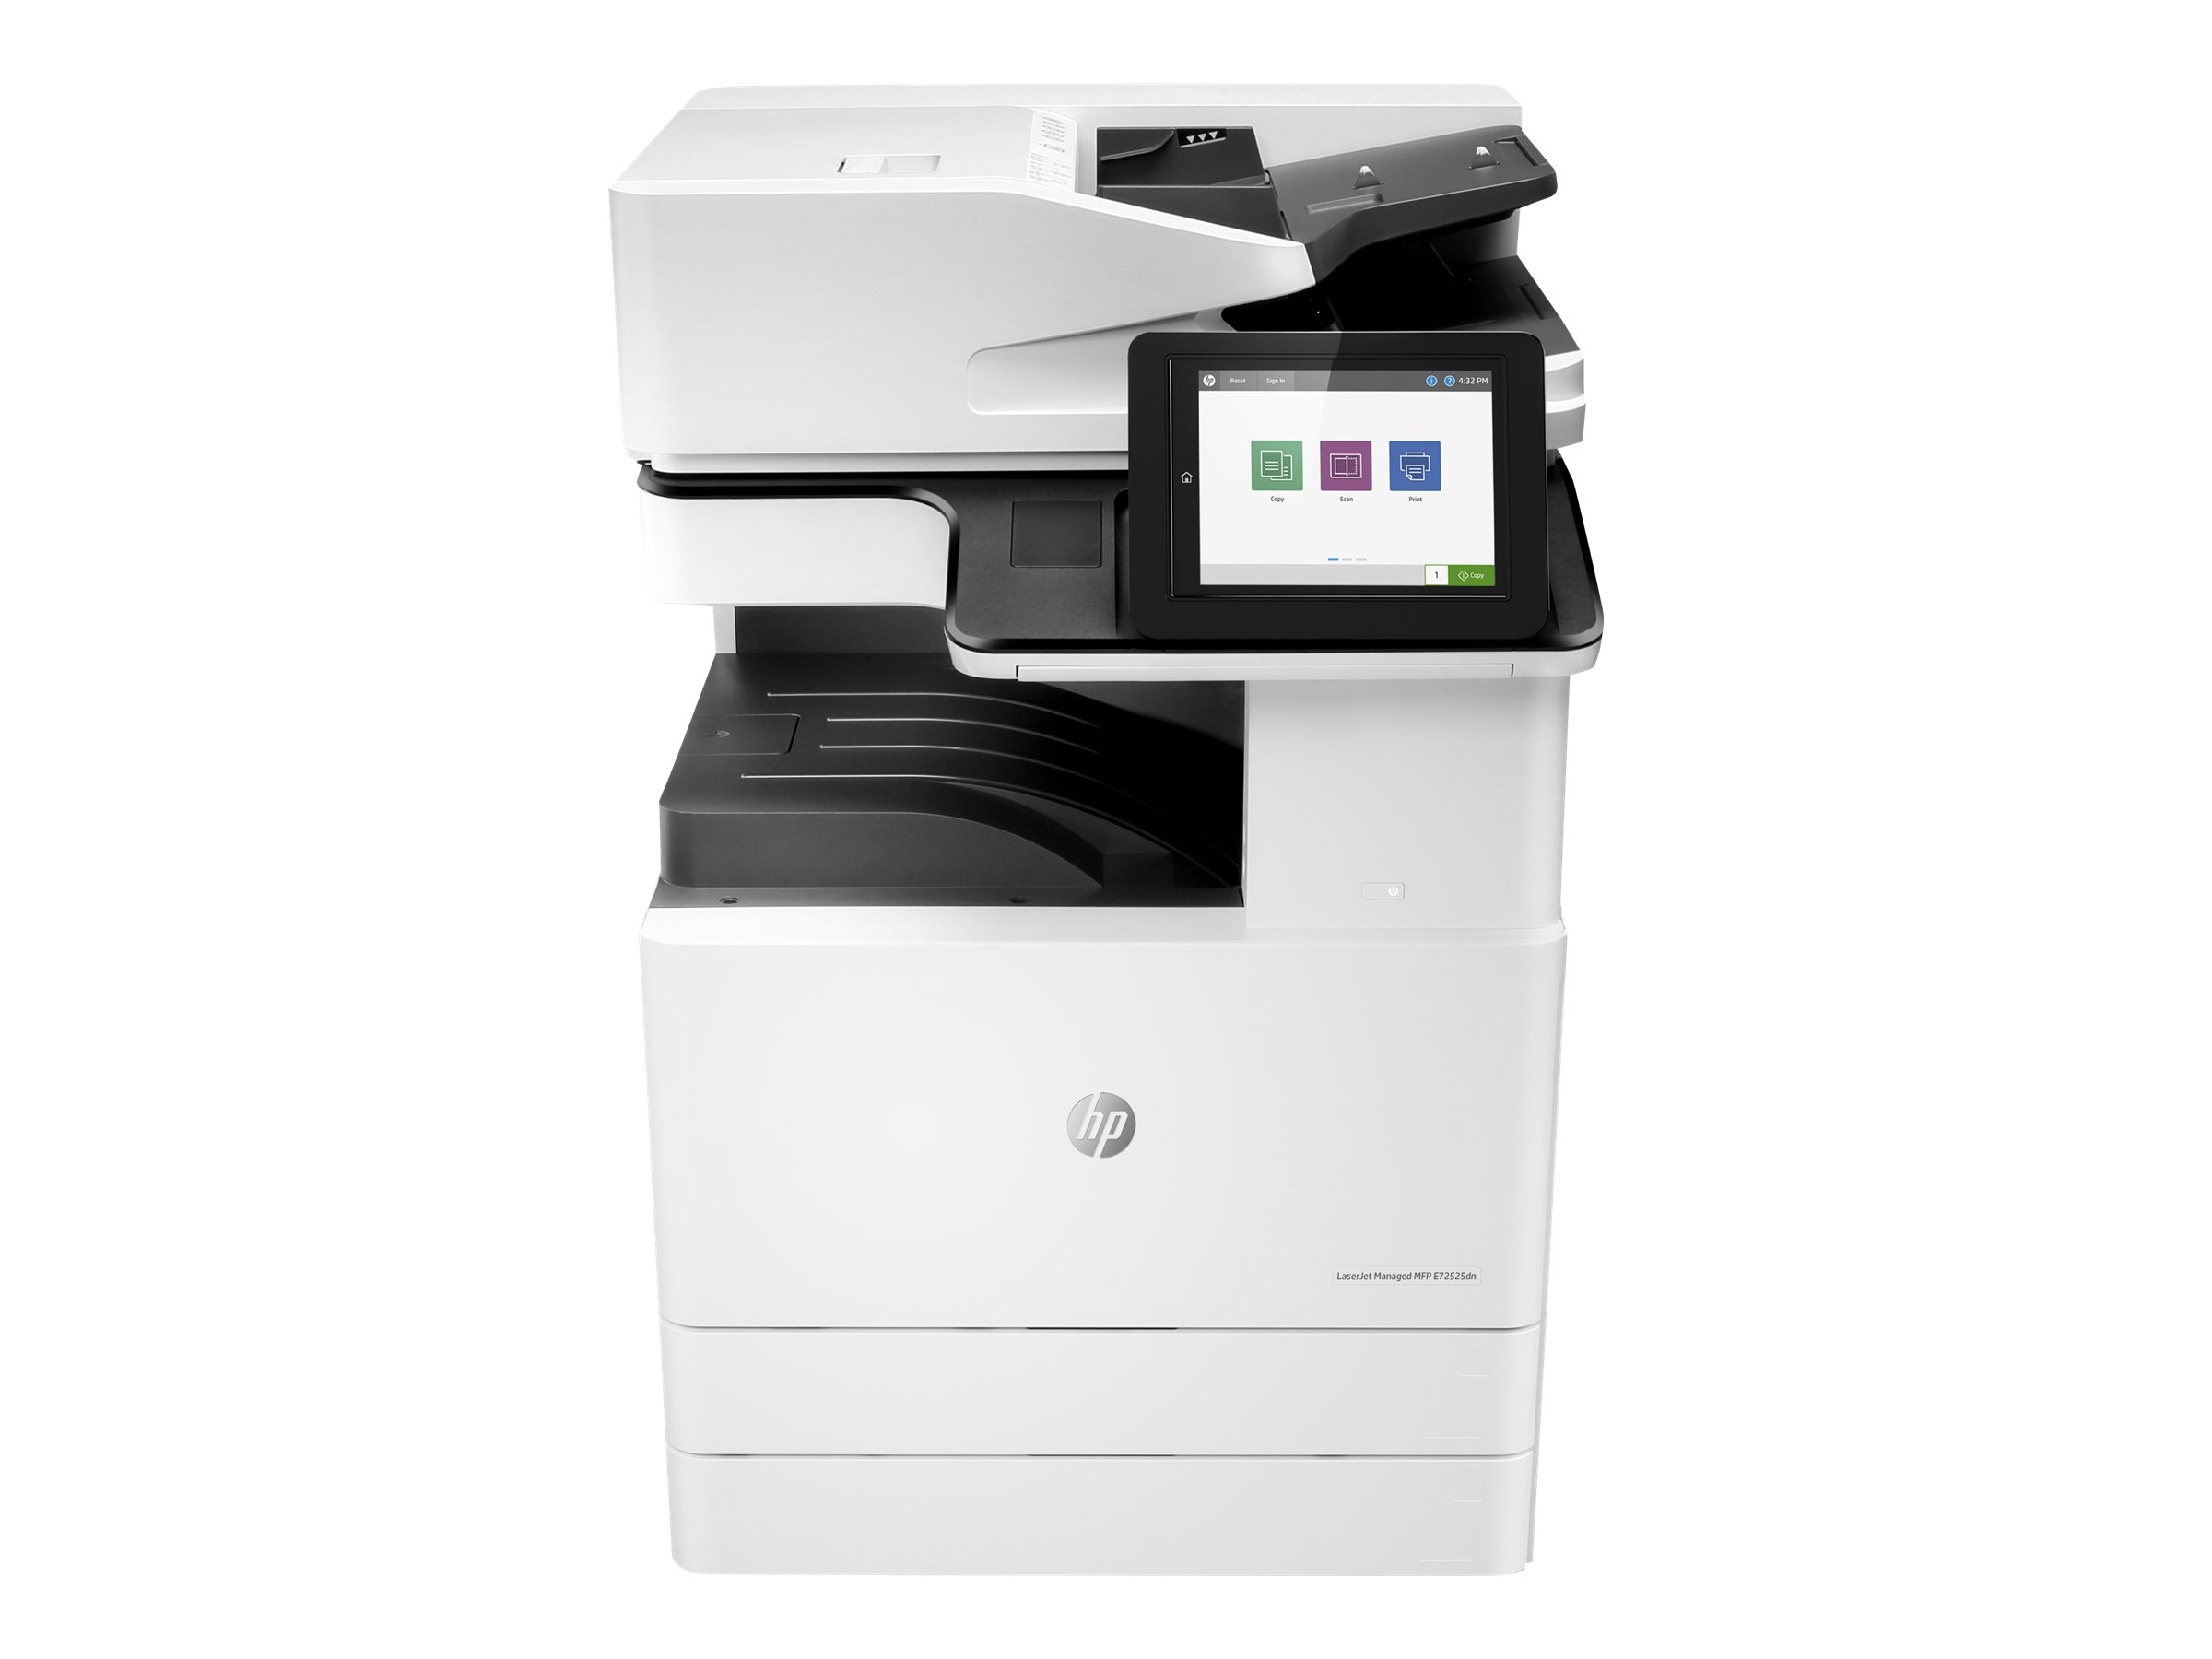 Copieur Color LaserJet Managed MFP HP E77822dn - vitesse 22ppm vue avant